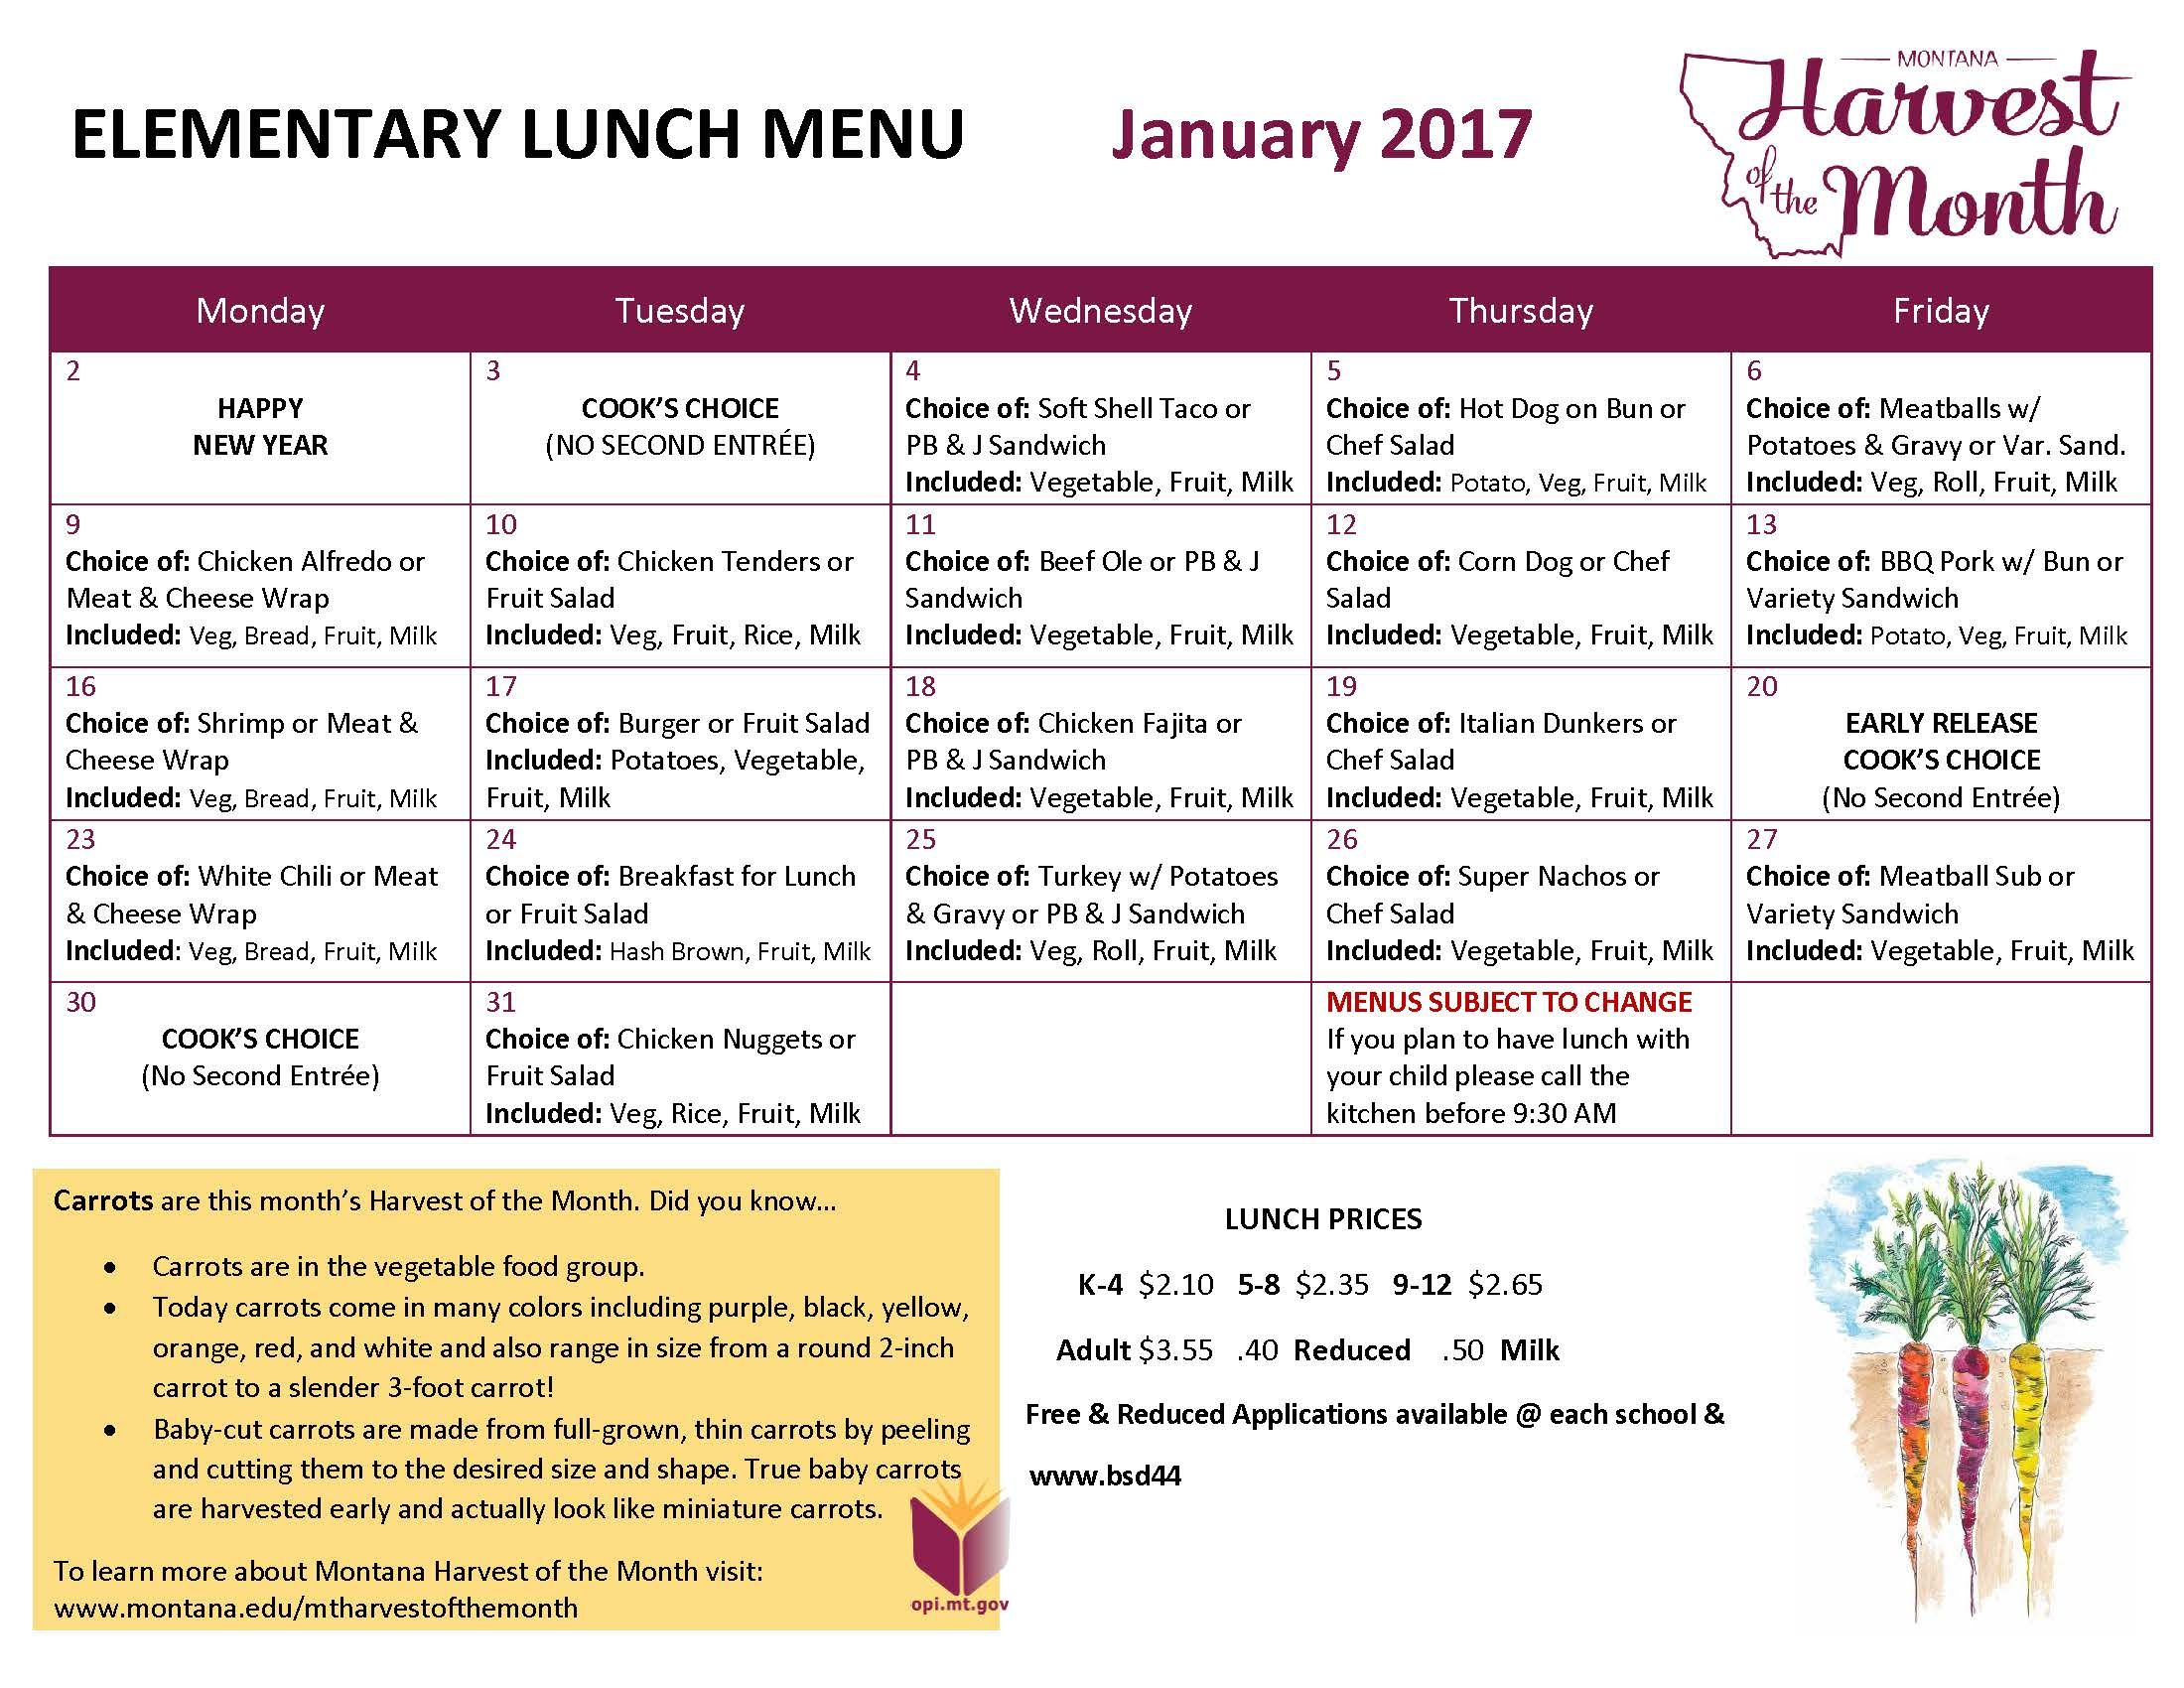 January 2017 Elementary Lunch Menu School Lunch Menu Lunch Menu